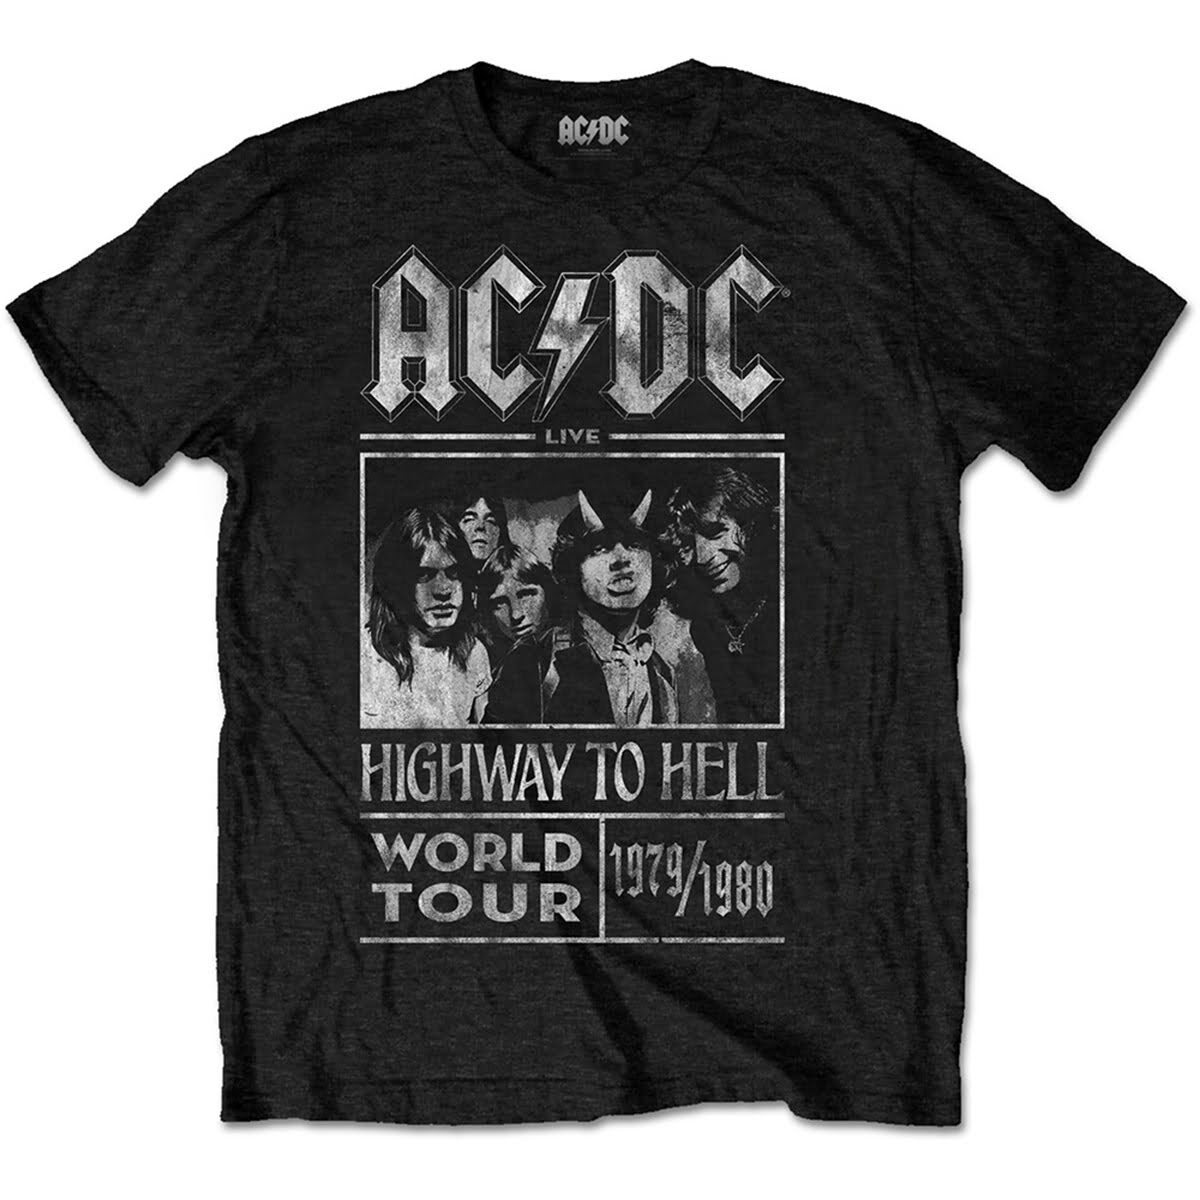 ac dc highway to hell world tour 1979 1980 svart t-skjorte til herre ACDCTTRTW01MB